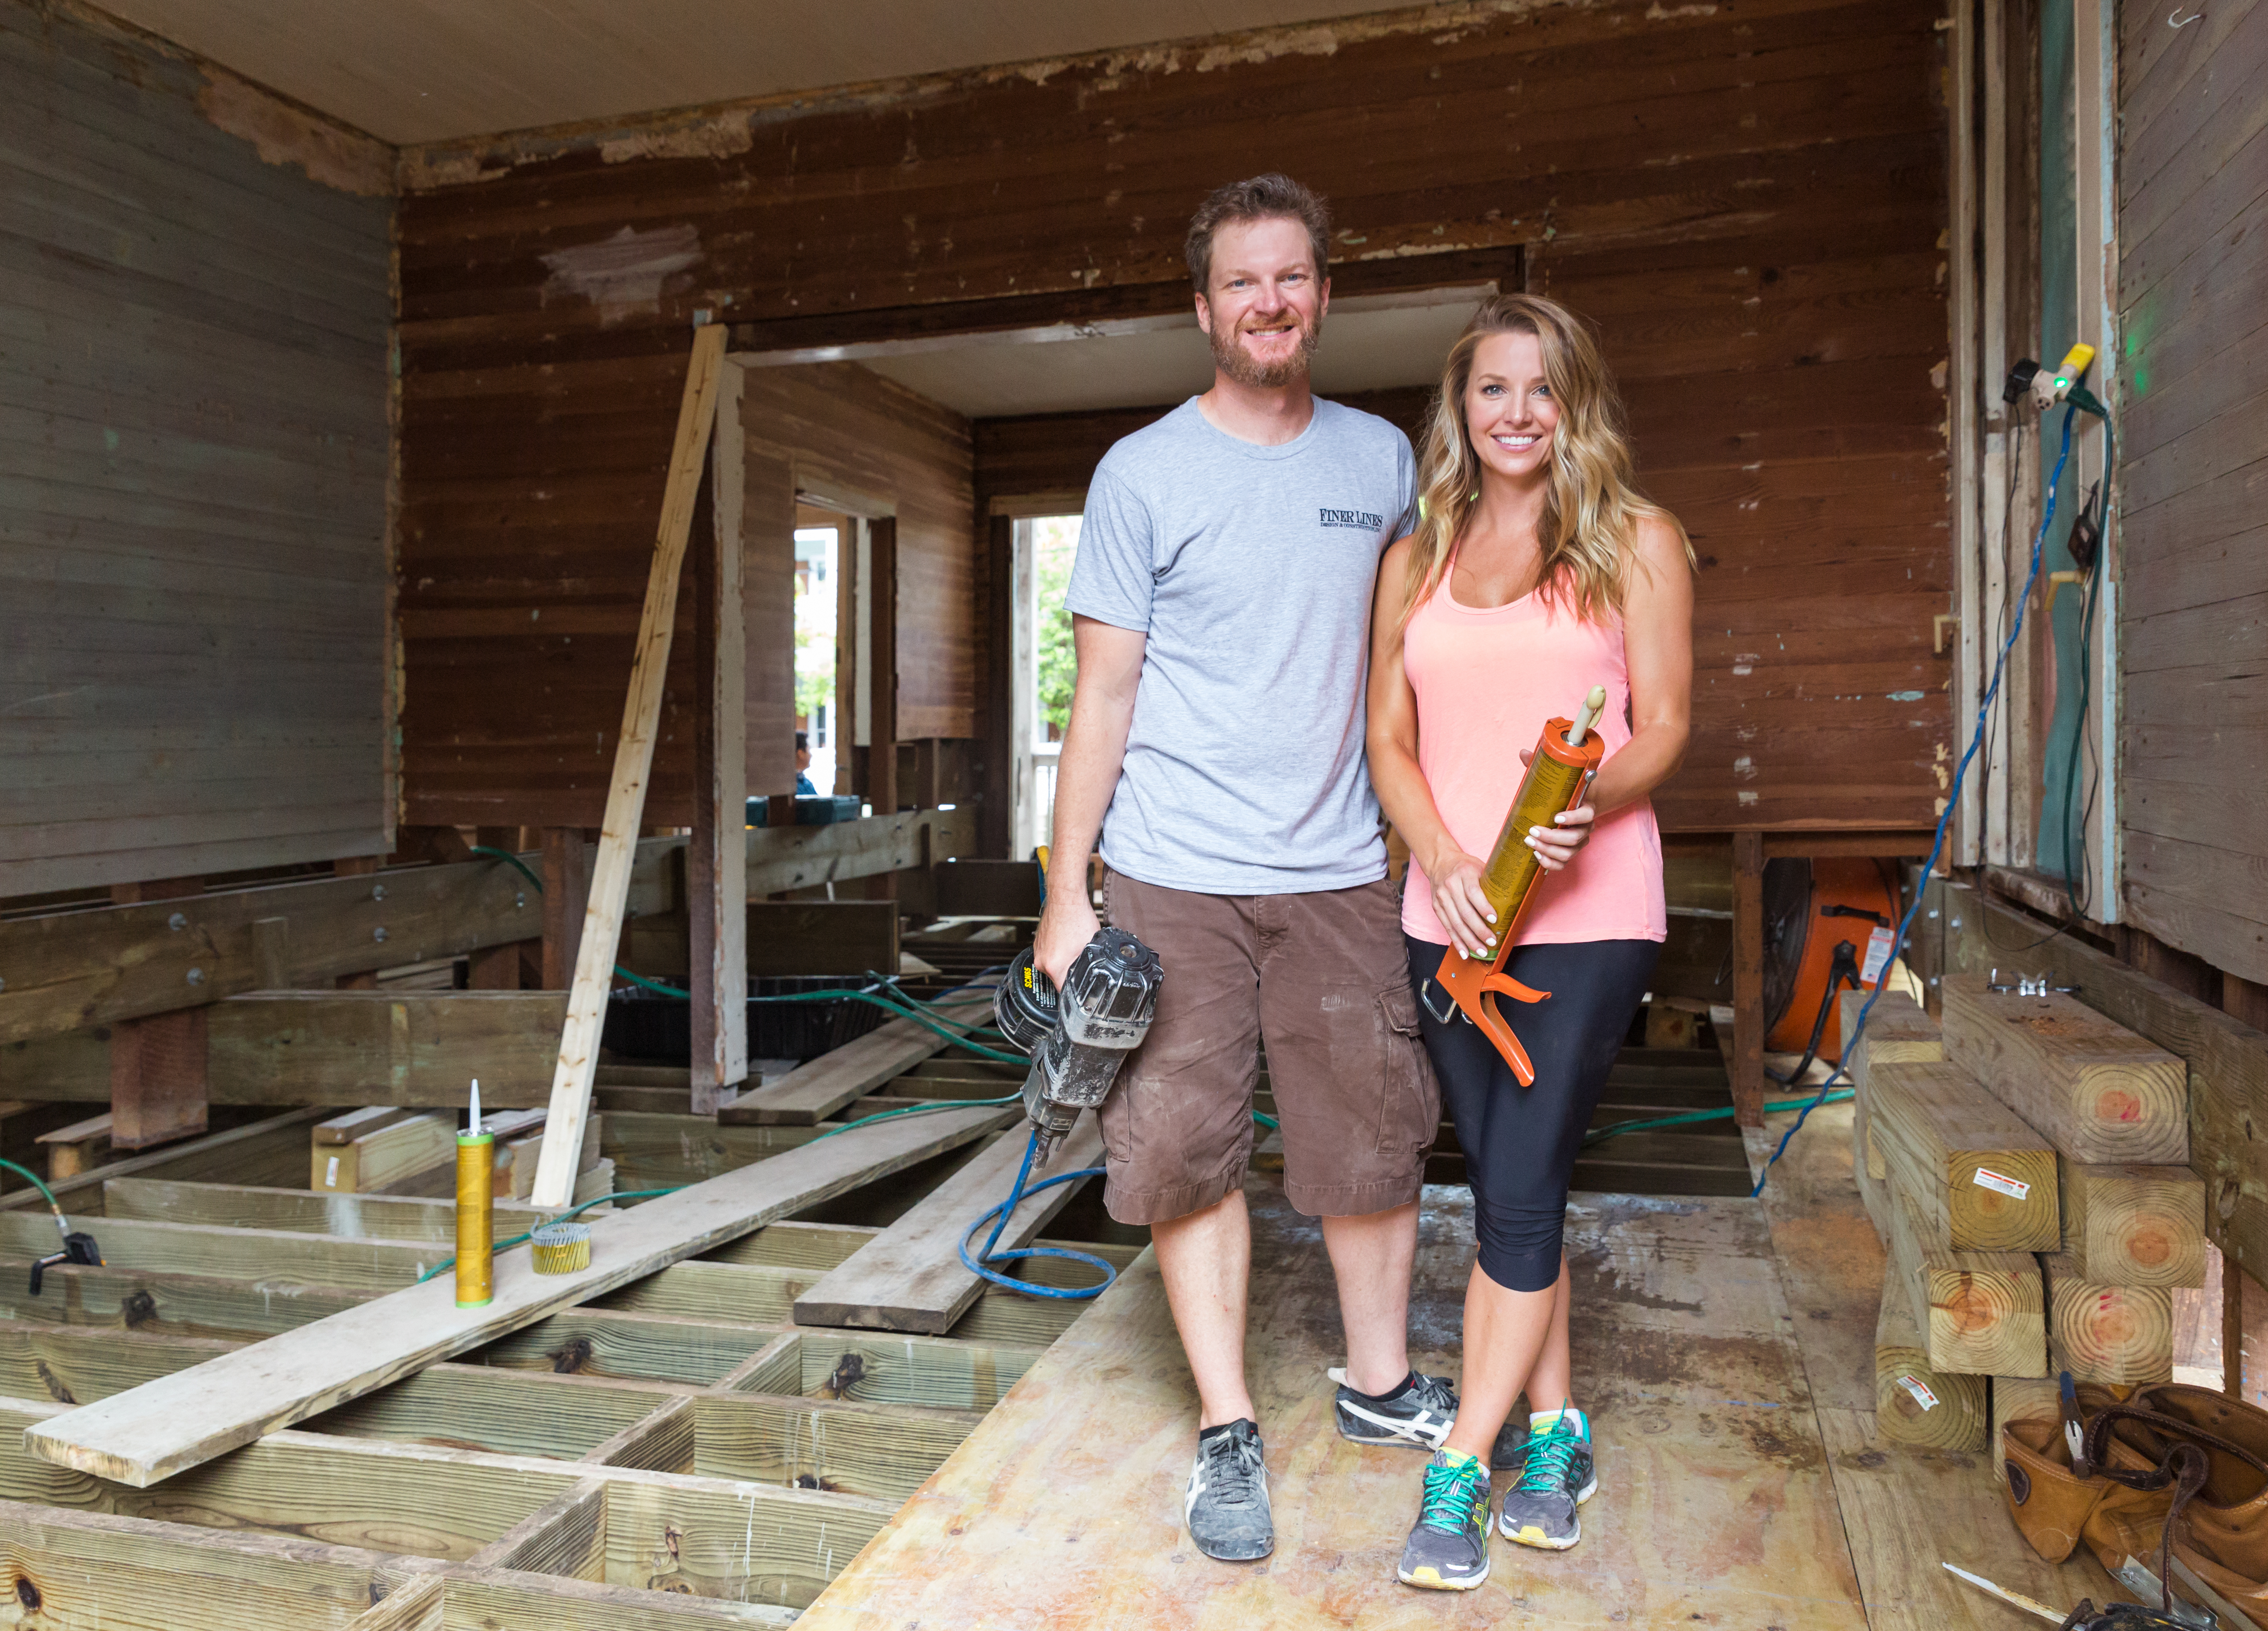 nascar champion dale earnhardt jr and wife amy race to home reno